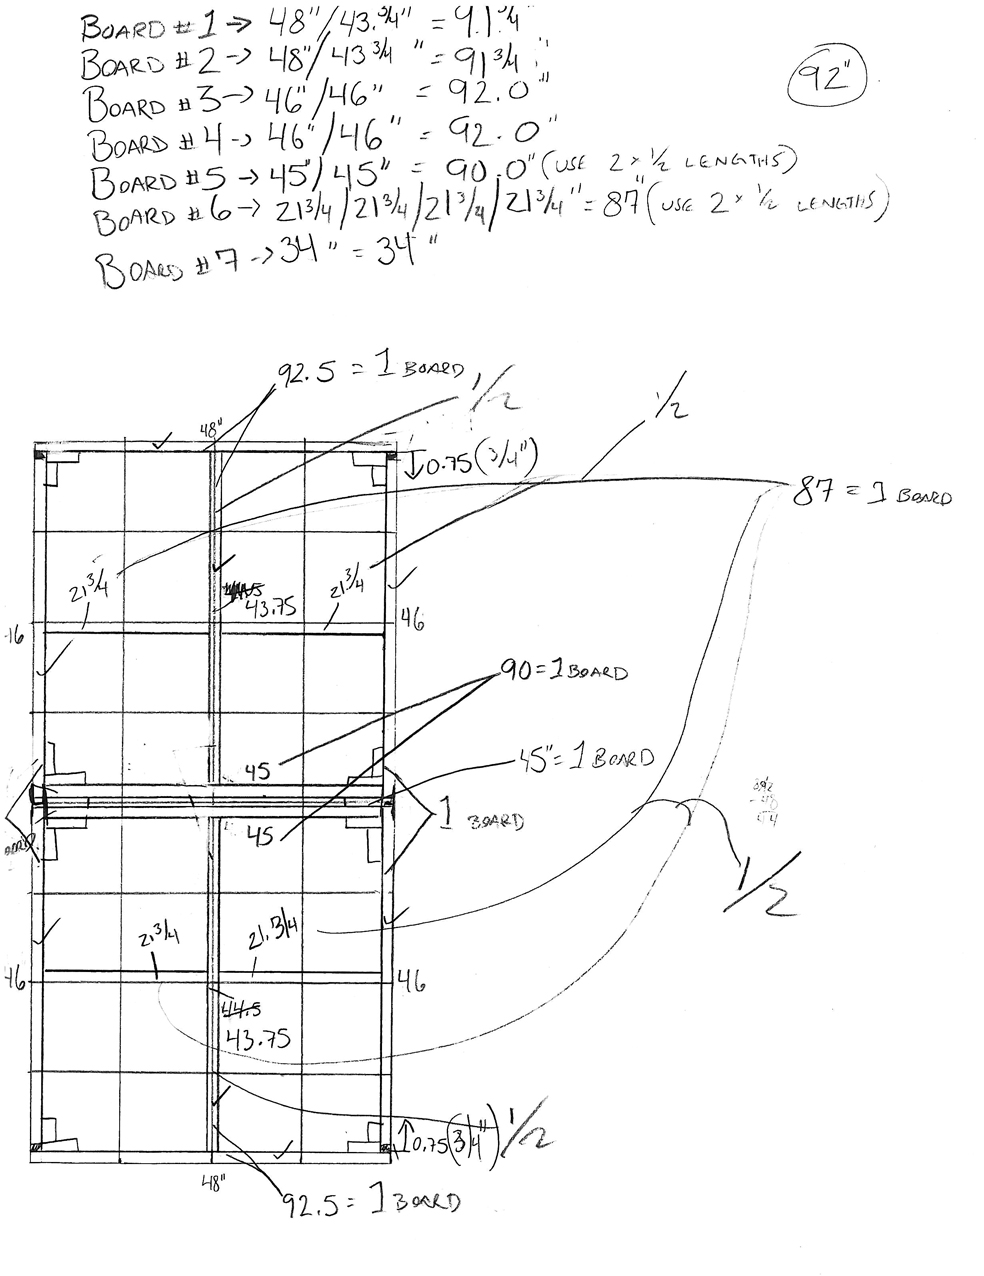 Unique Old Honeywell Thermostat Wiring Diagram Frieze - Best Images ...